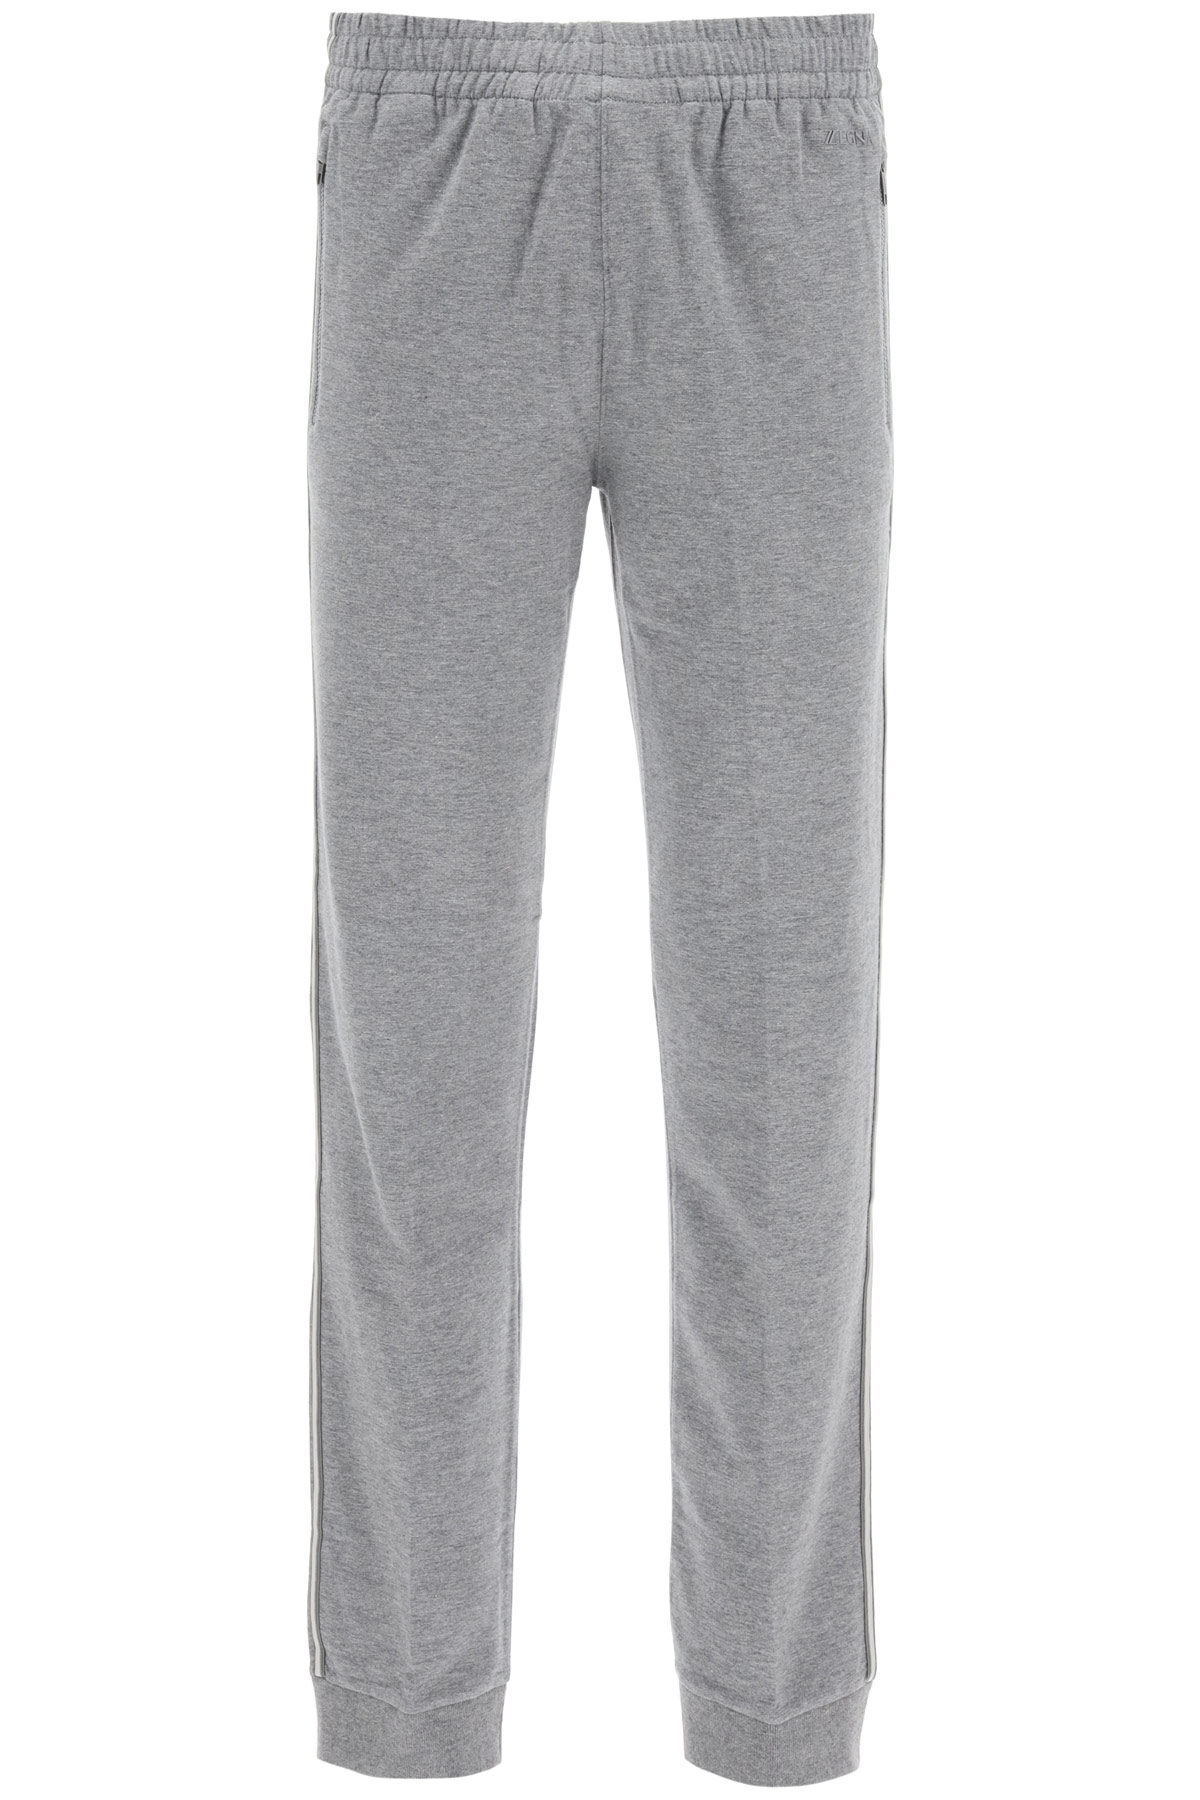 Z ZEGNA JOGGER PANTS WITH SIDE BANDS M Grey Cotton